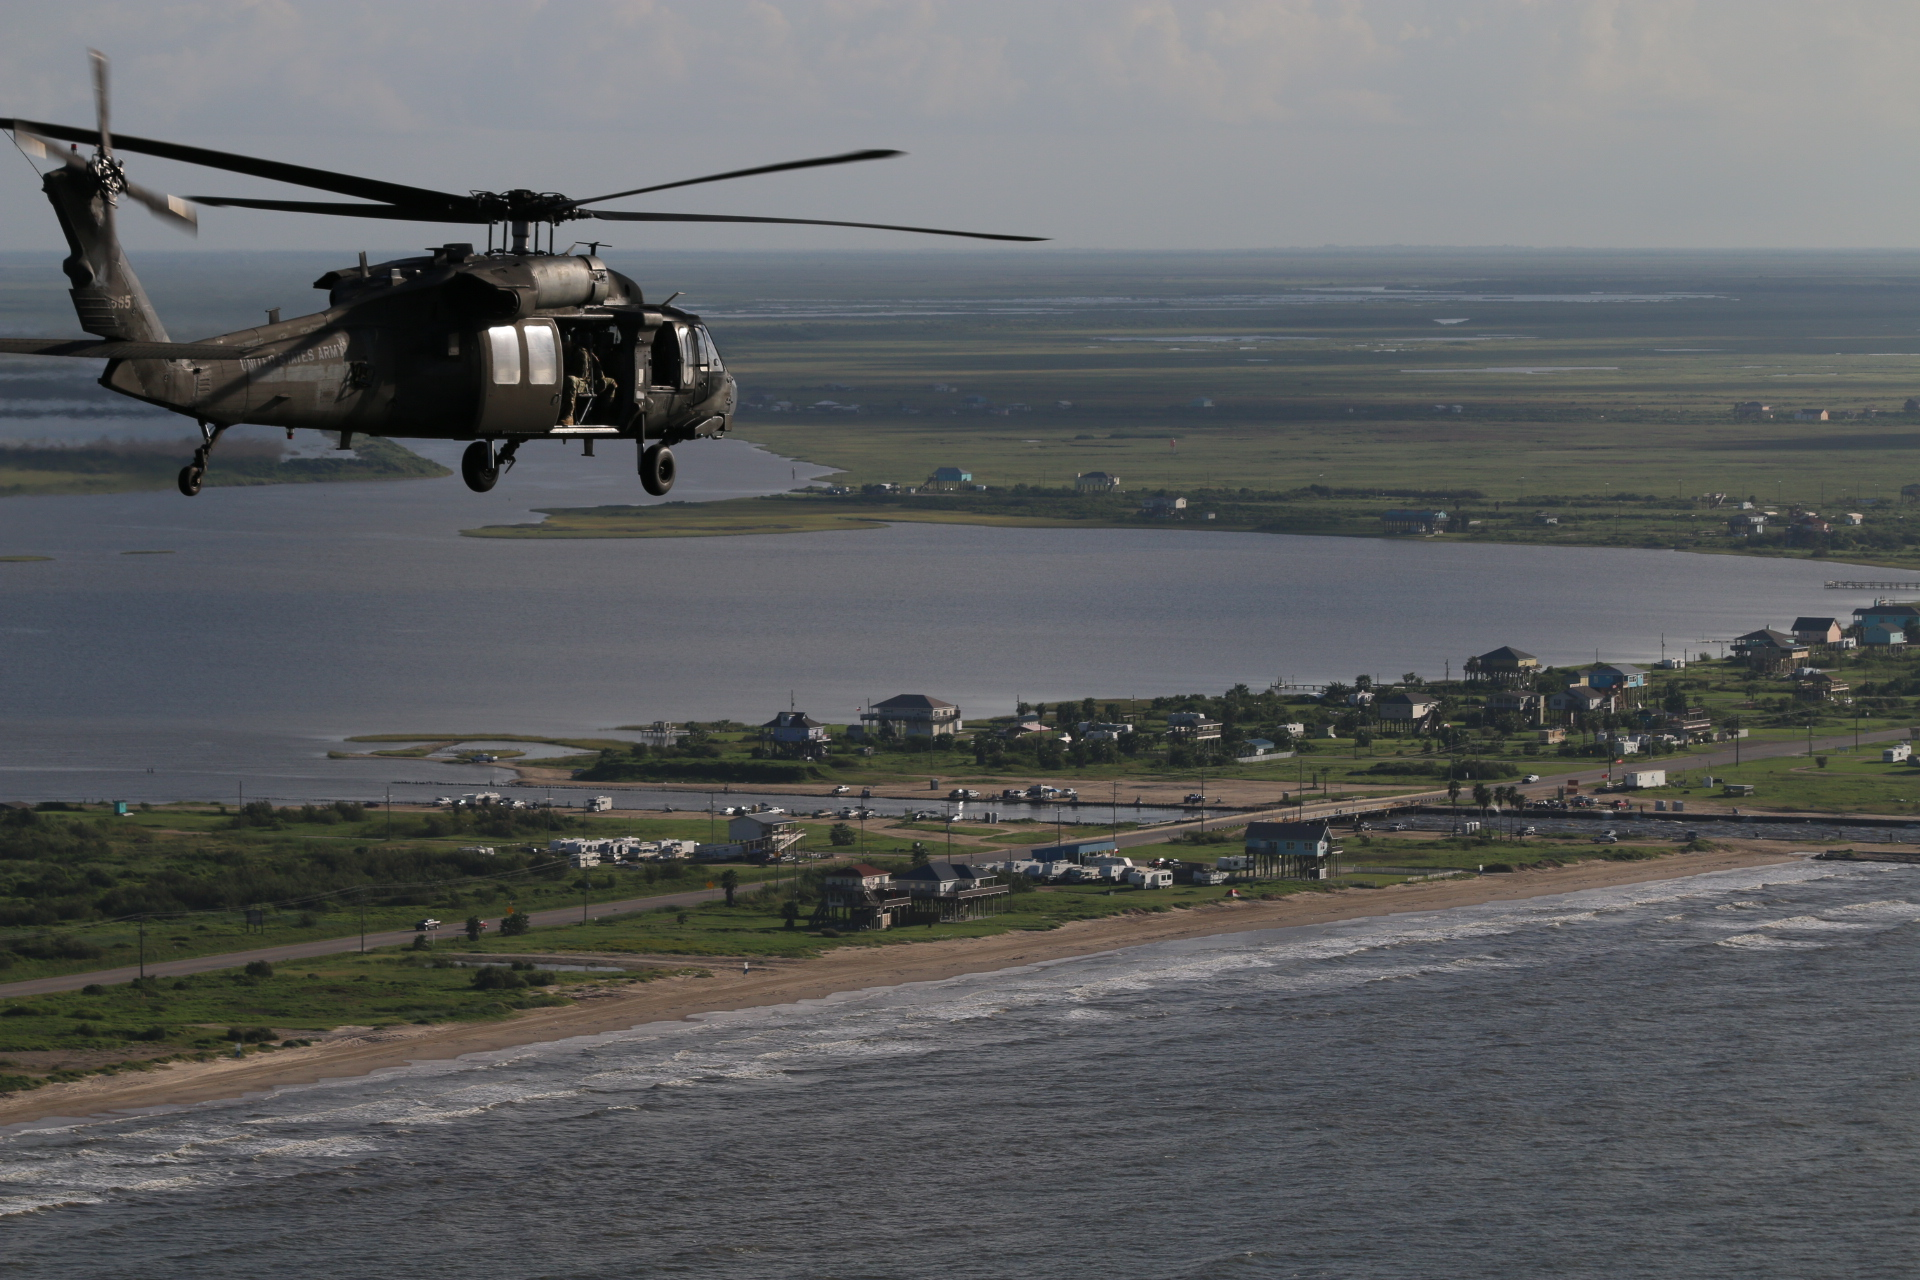 US Army helicopter over Bolivar Peninsula where Hurricane Ike damage or destroyed 85% of buildings